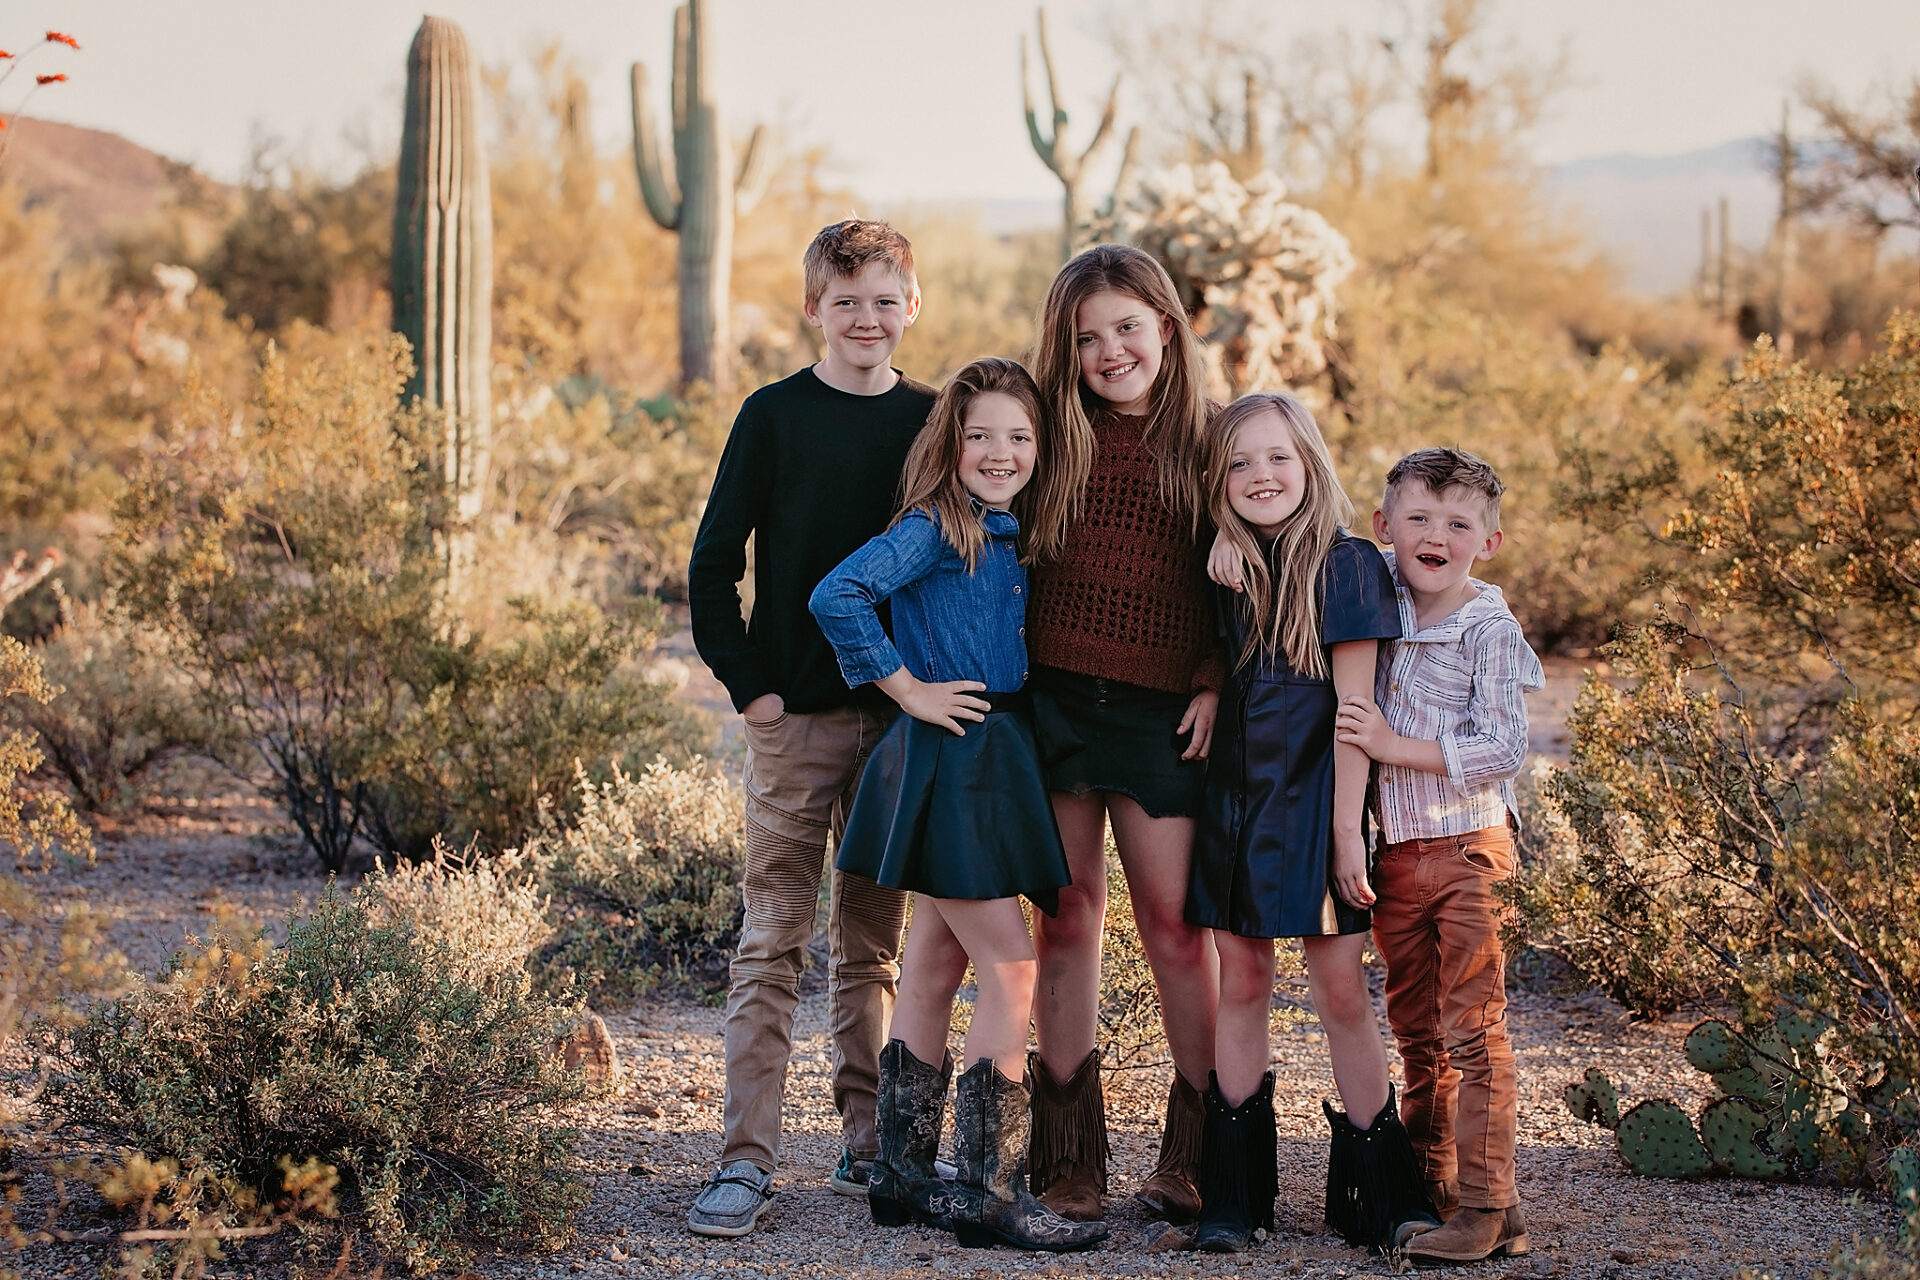 tucson family poses for photographer